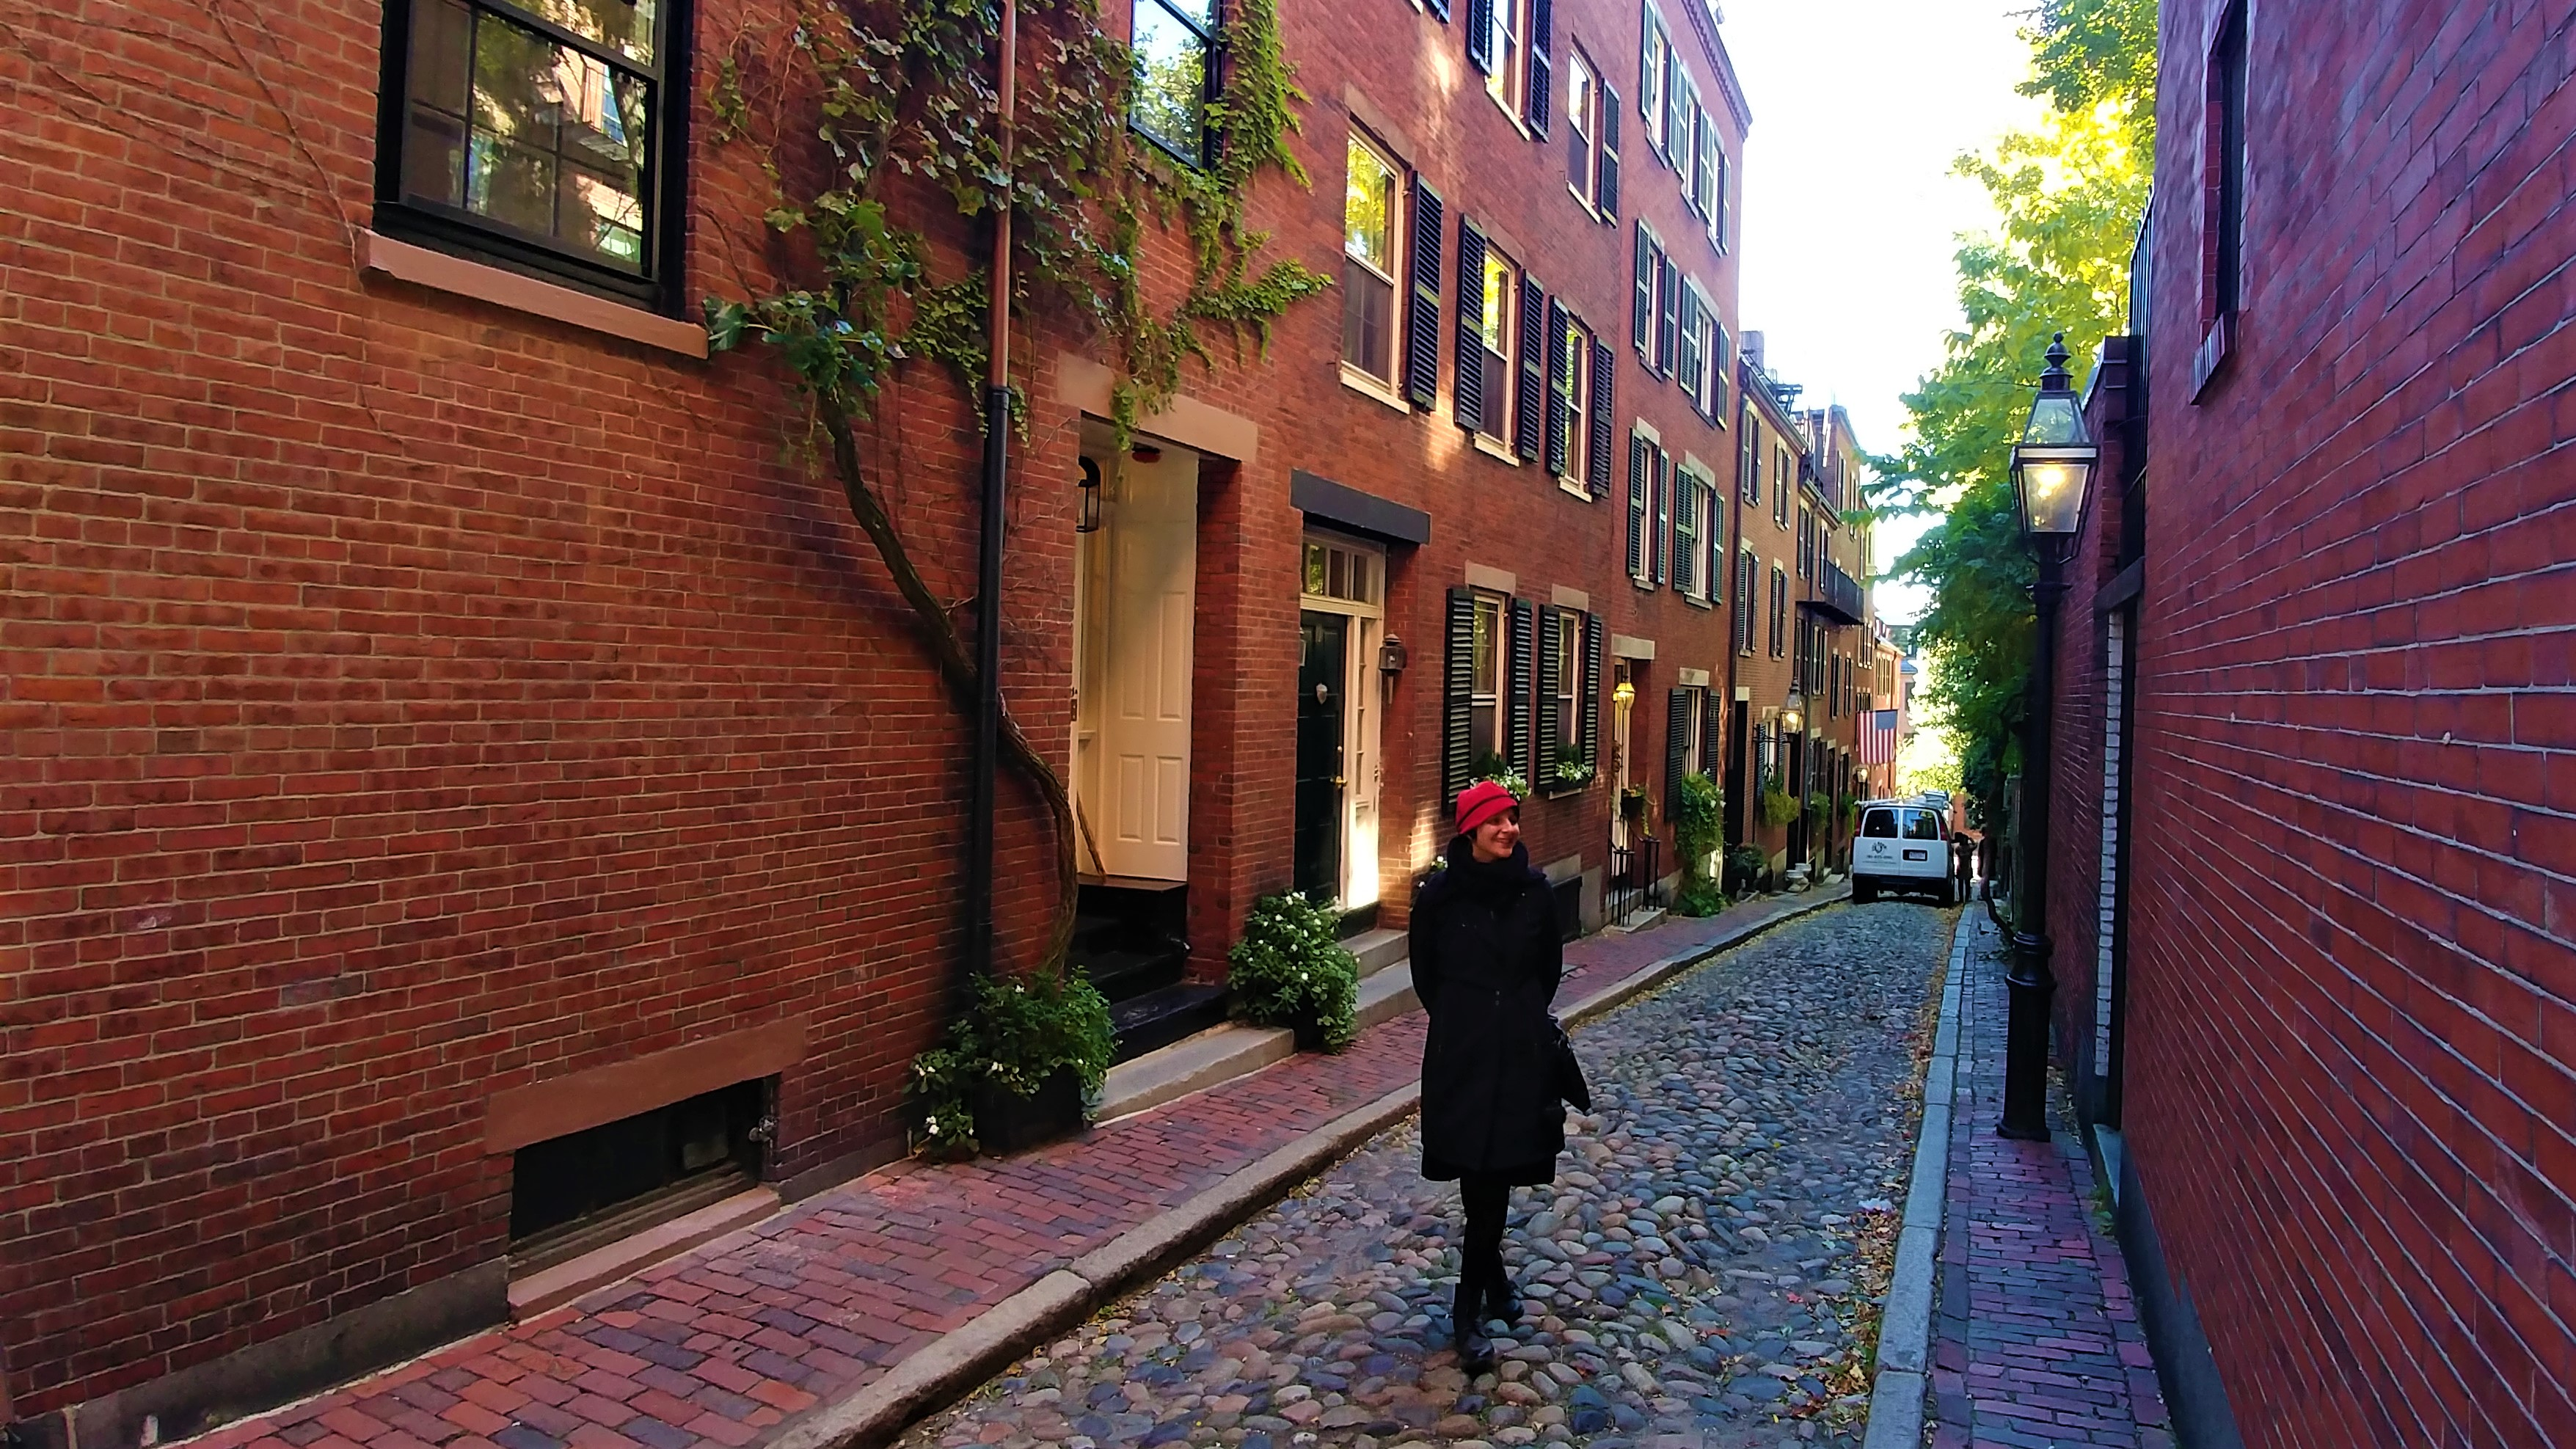 Acorn Street Beacon Hill Boston Usa Voyage Road Trip Blog Arpenter Le Chemin